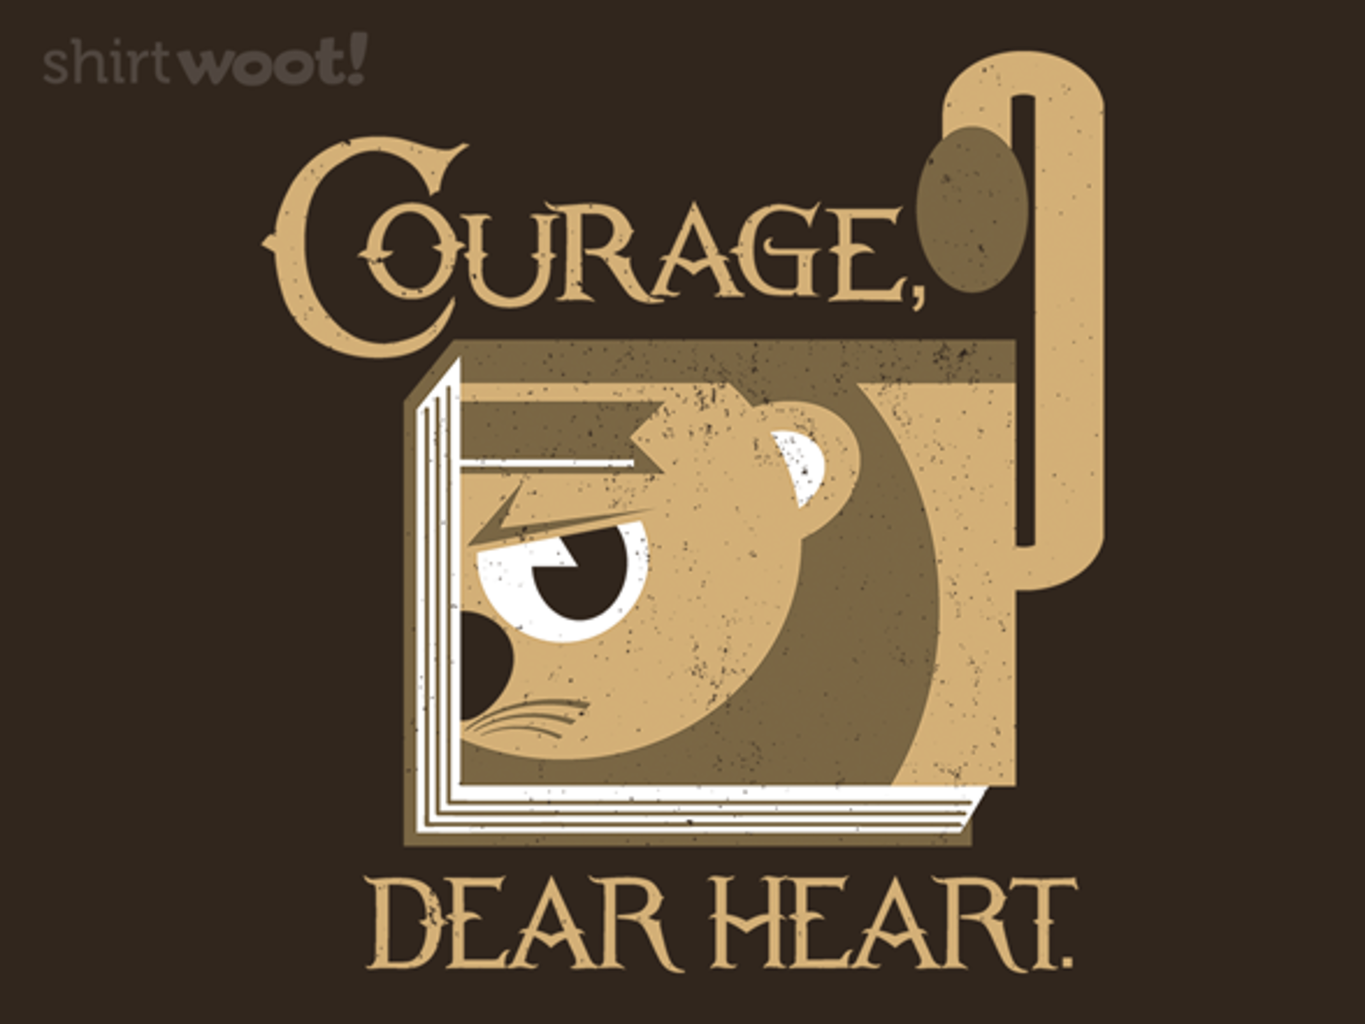 Woot!: Courage